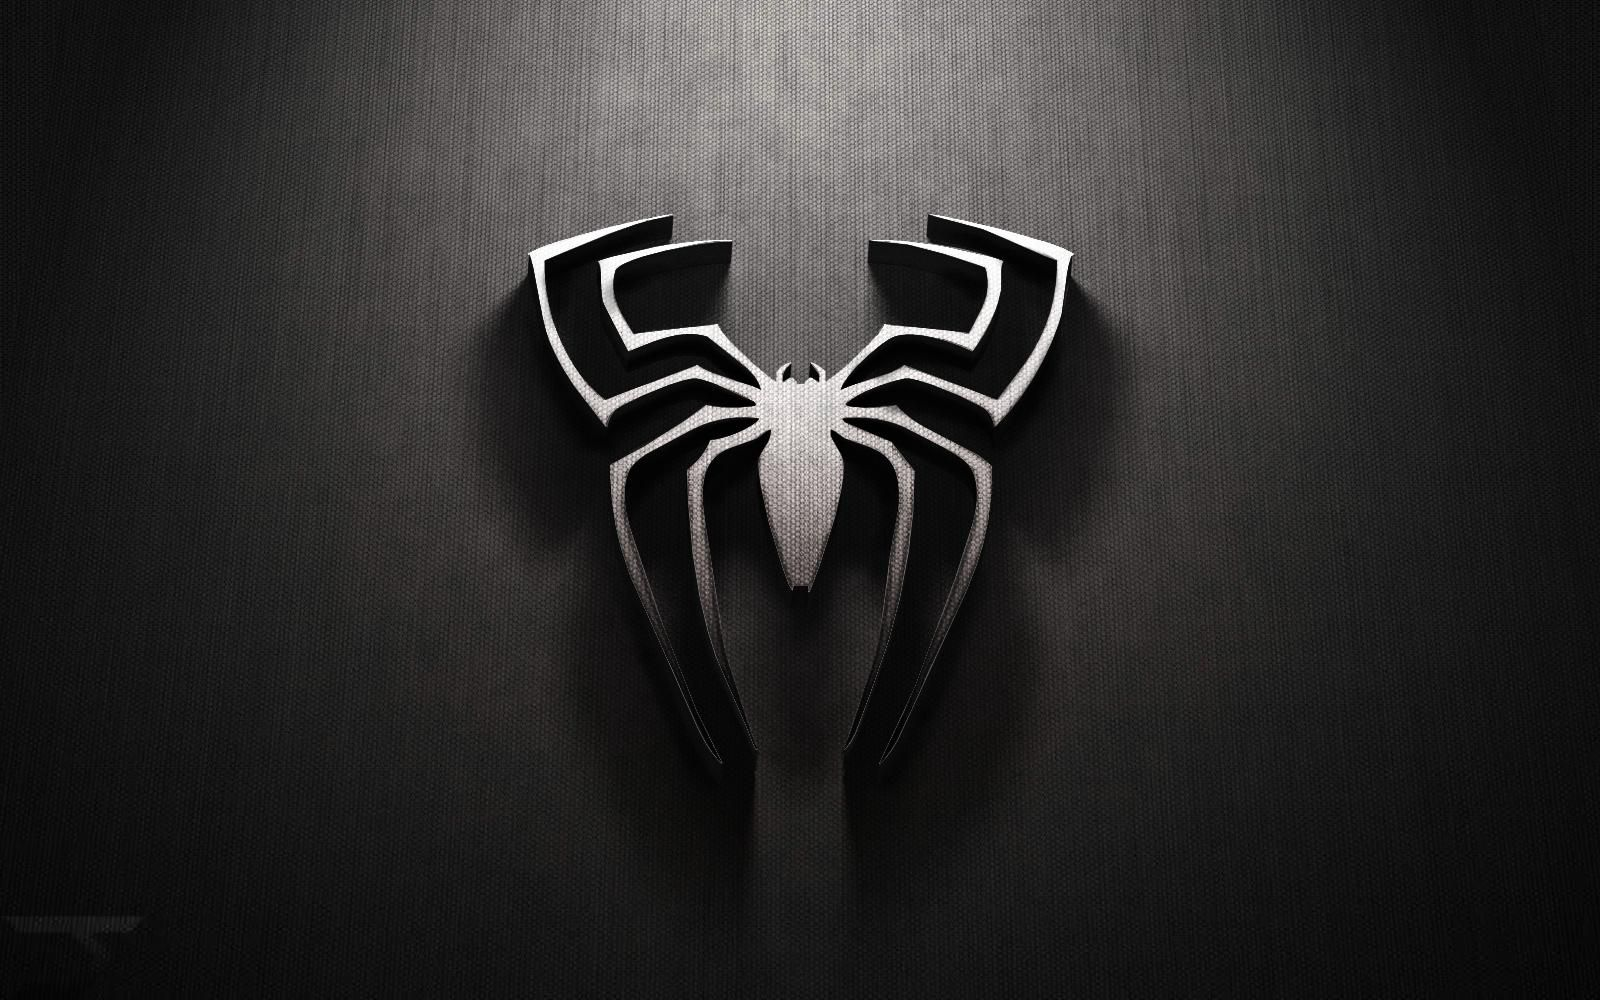 Black Spiderman Wallpaper Picture Nmz Black Spiderman Logo Wallpaper Hd Spiderman Pictures